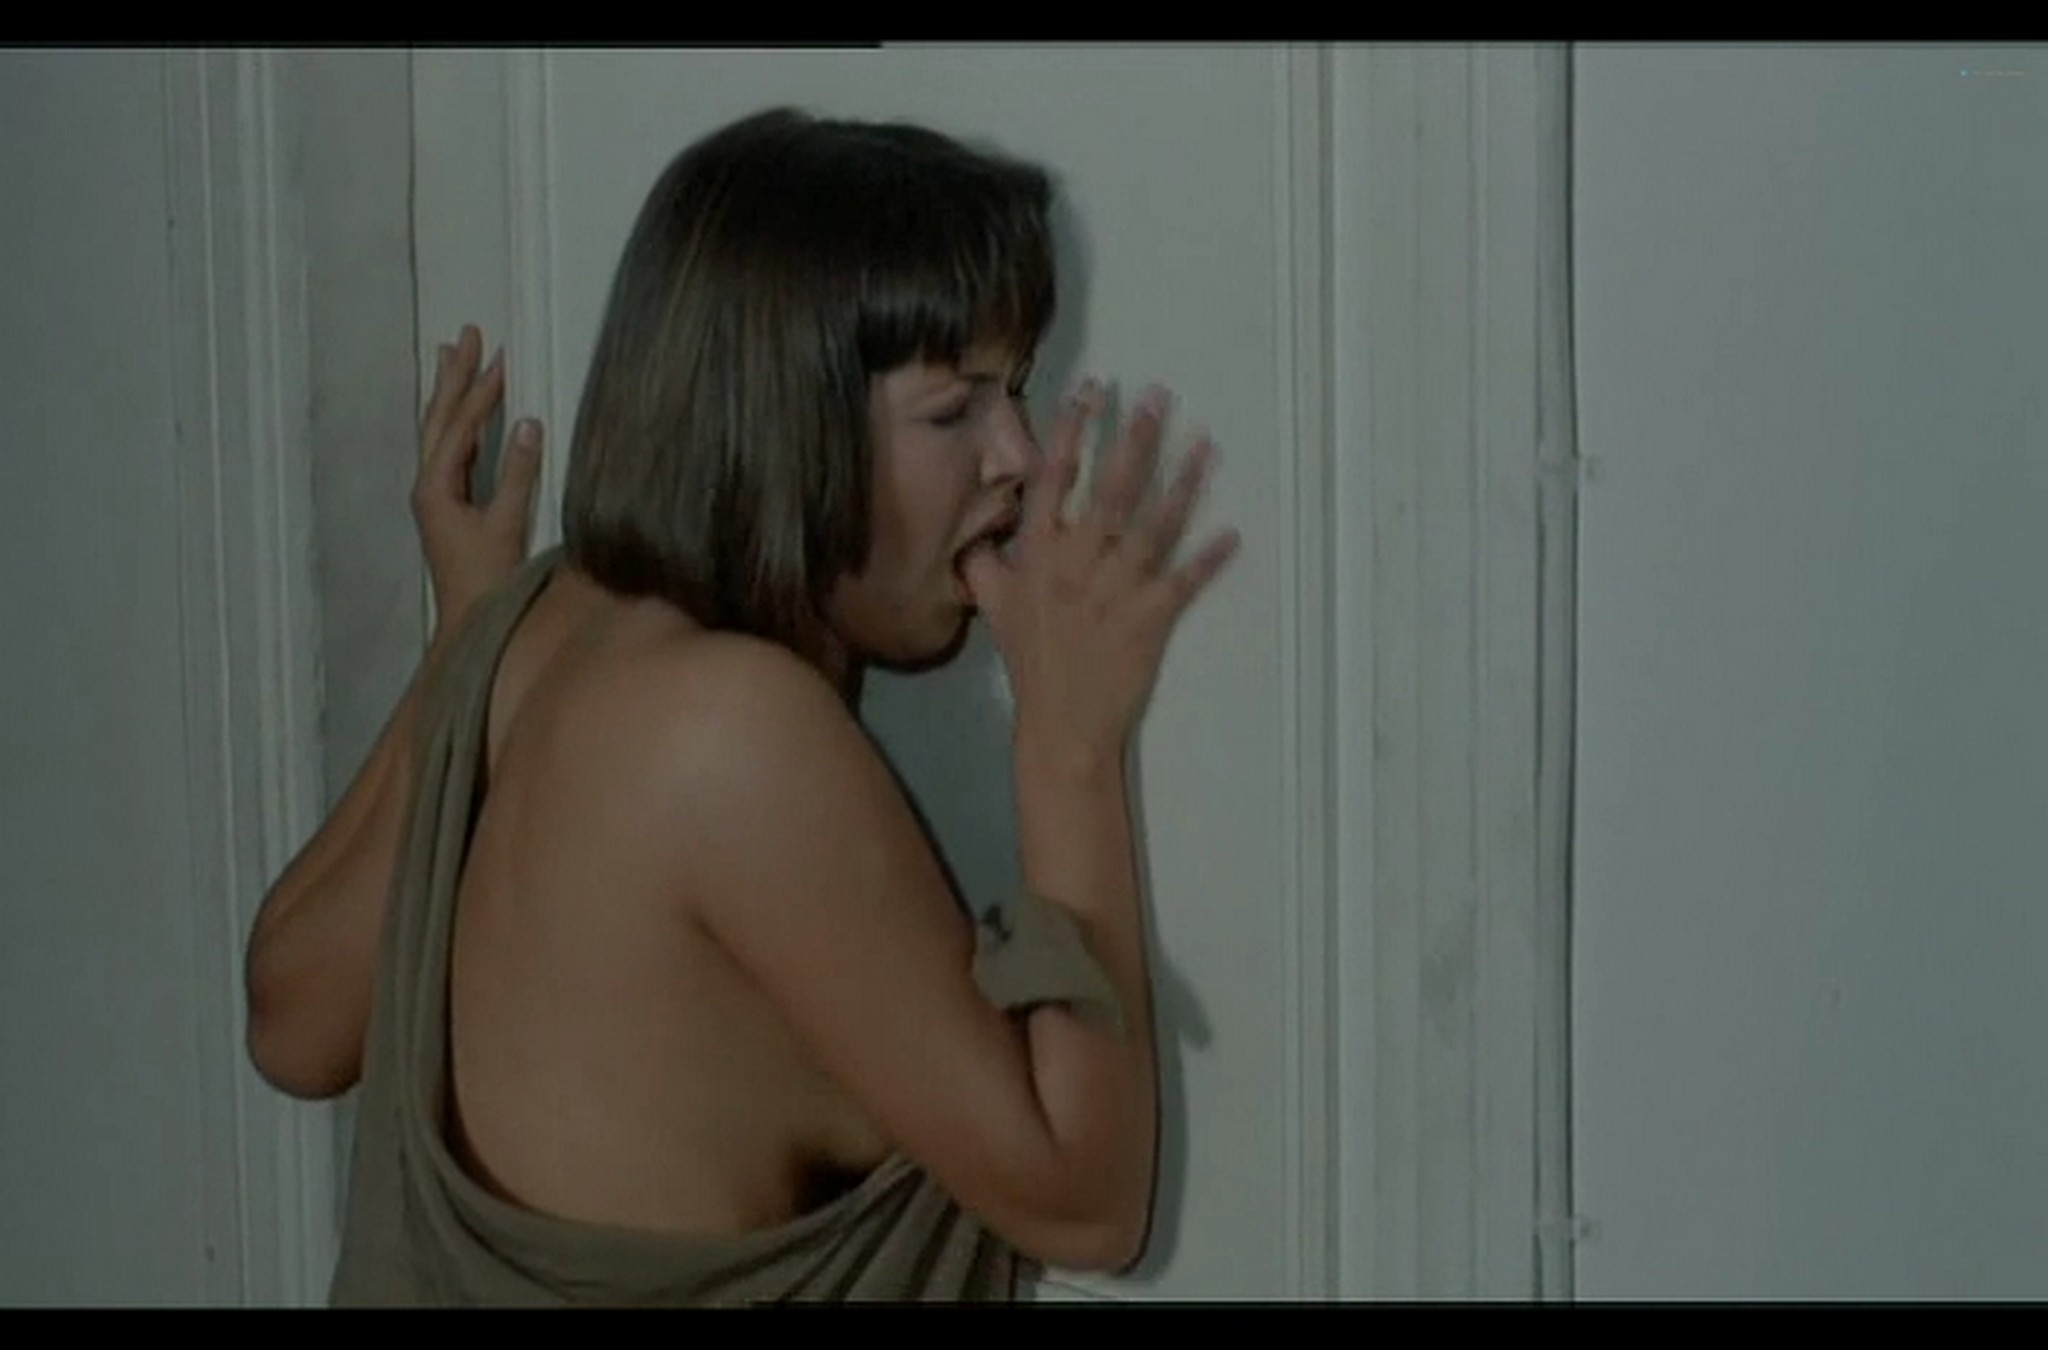 Sophie Marceau nude full frontal Christiane Jean nude too Lamour braque FR 1985 DvDrip 011